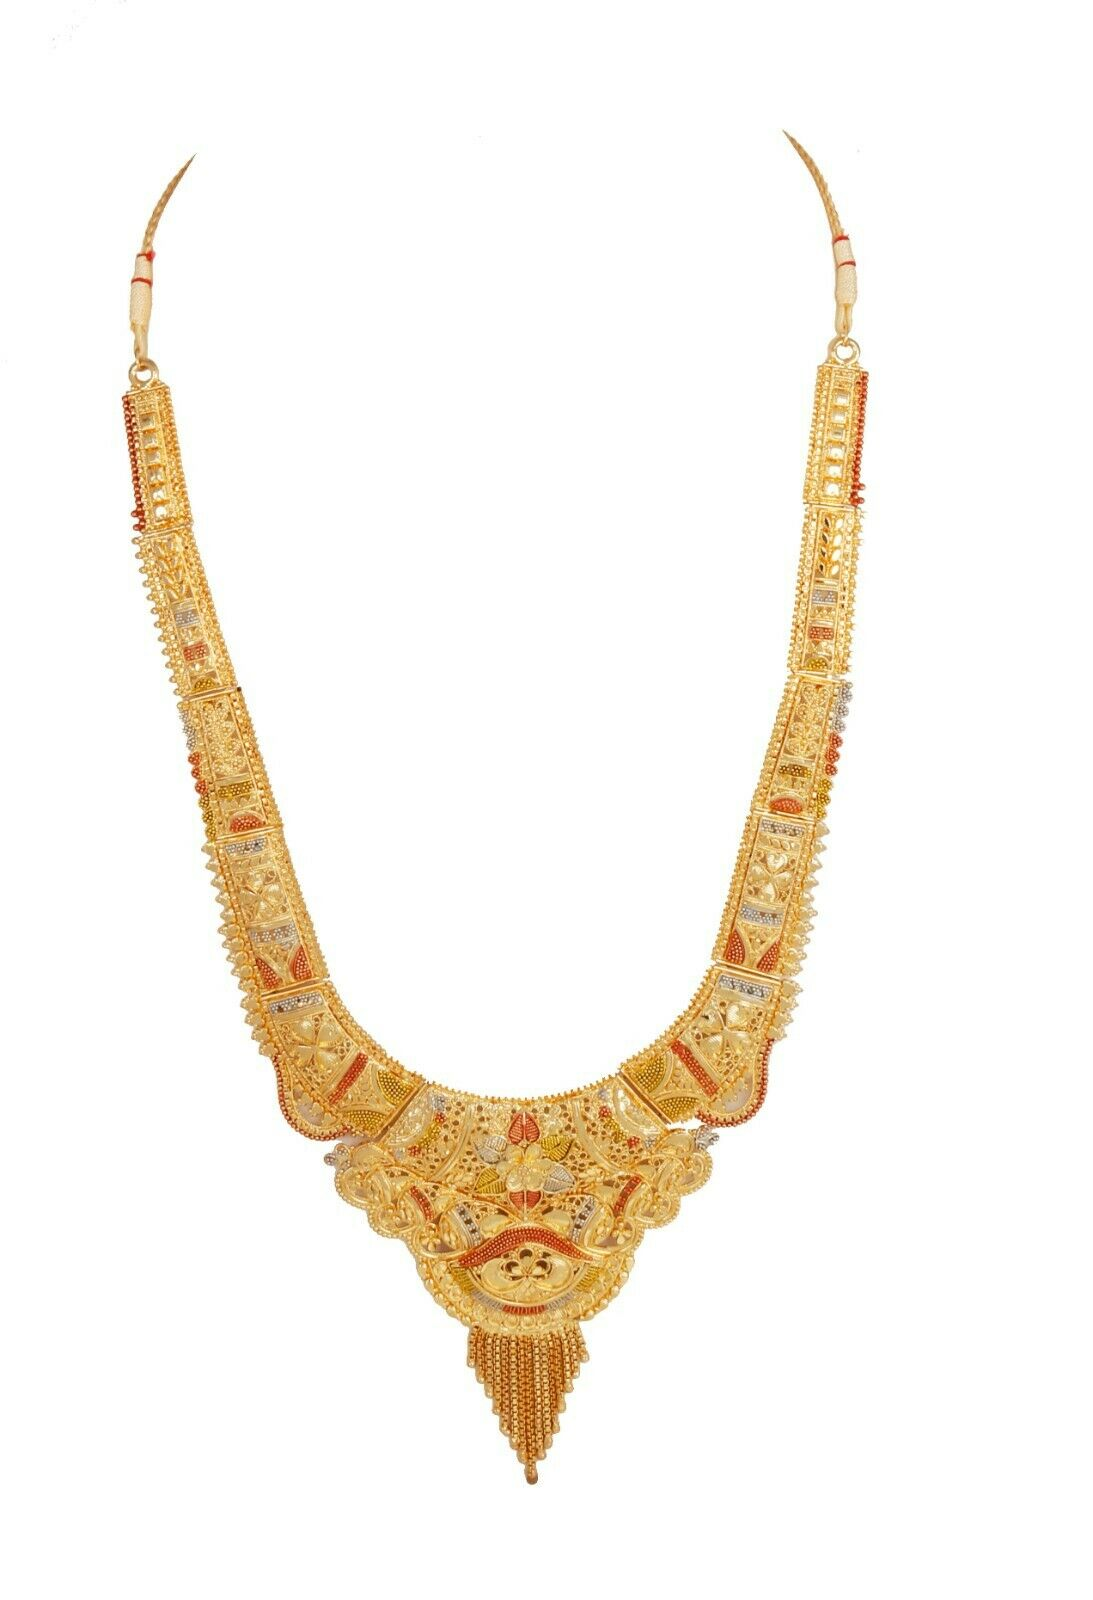 Indian 22 K Gold Plated Jewelry Bollywood Wedding  Necklace Earrings Set